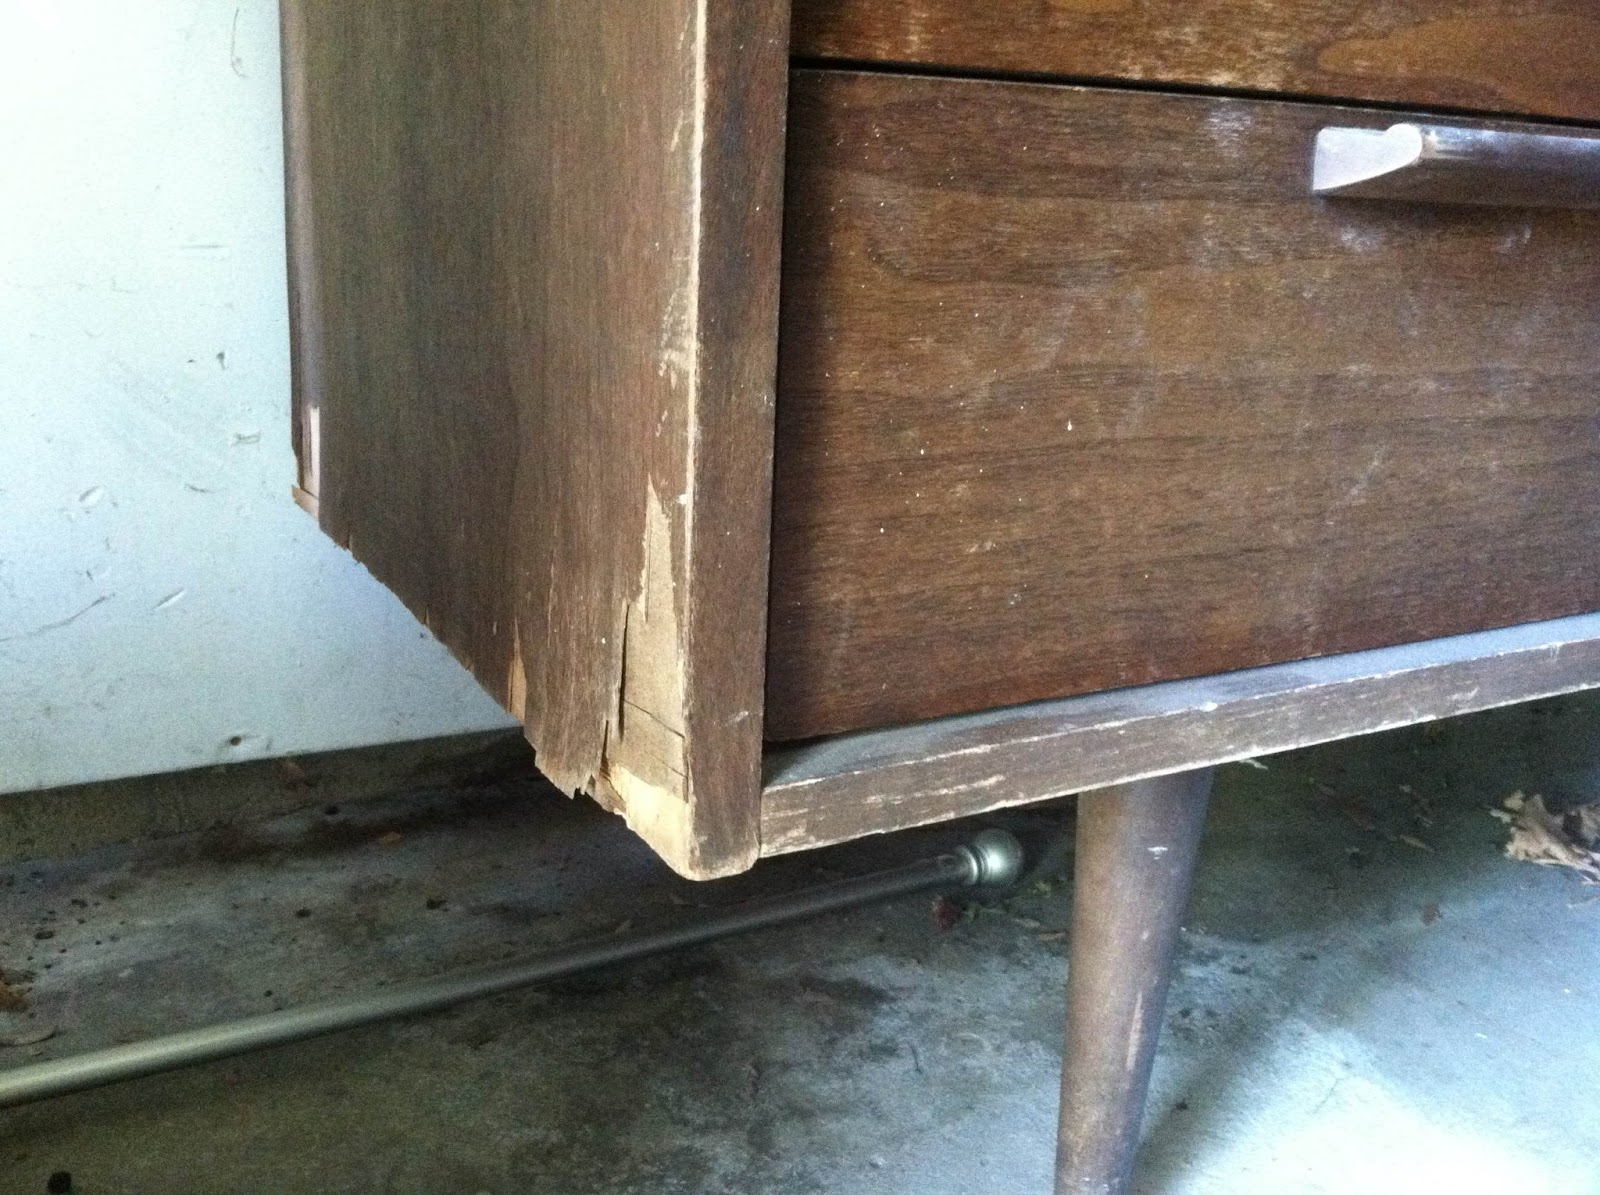 How To Remove Water Stains From Wood Furniture Furniture Design Ideas